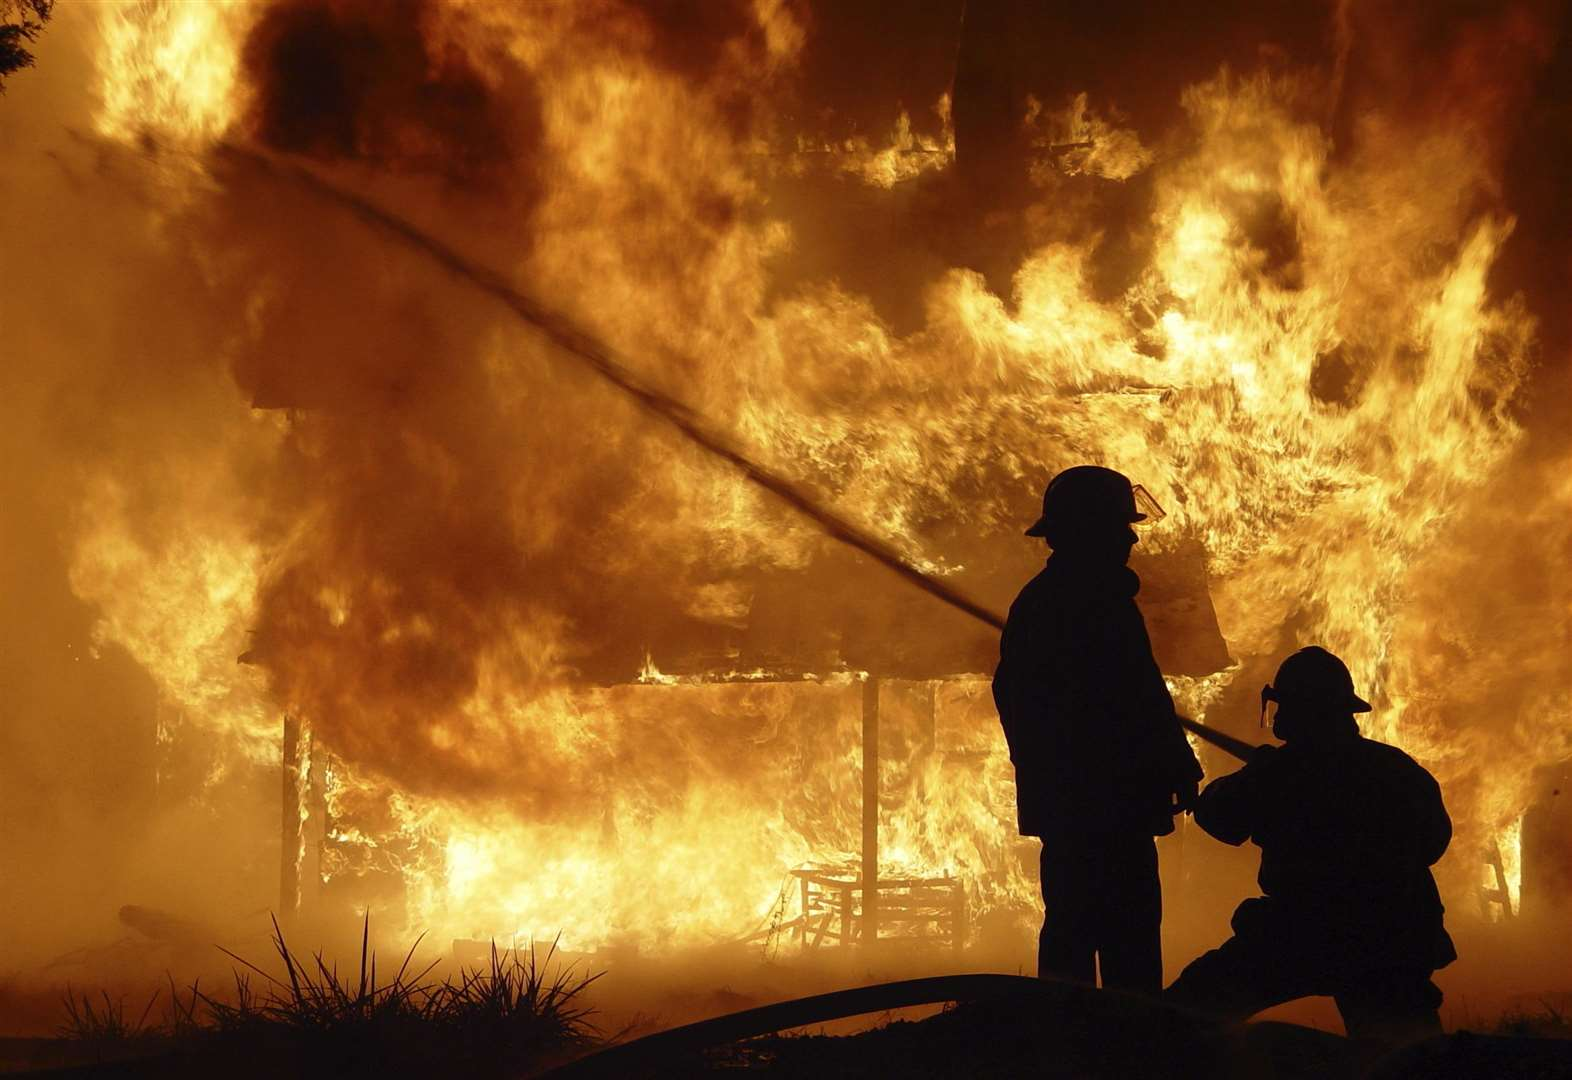 Crews tackle barn blaze through night